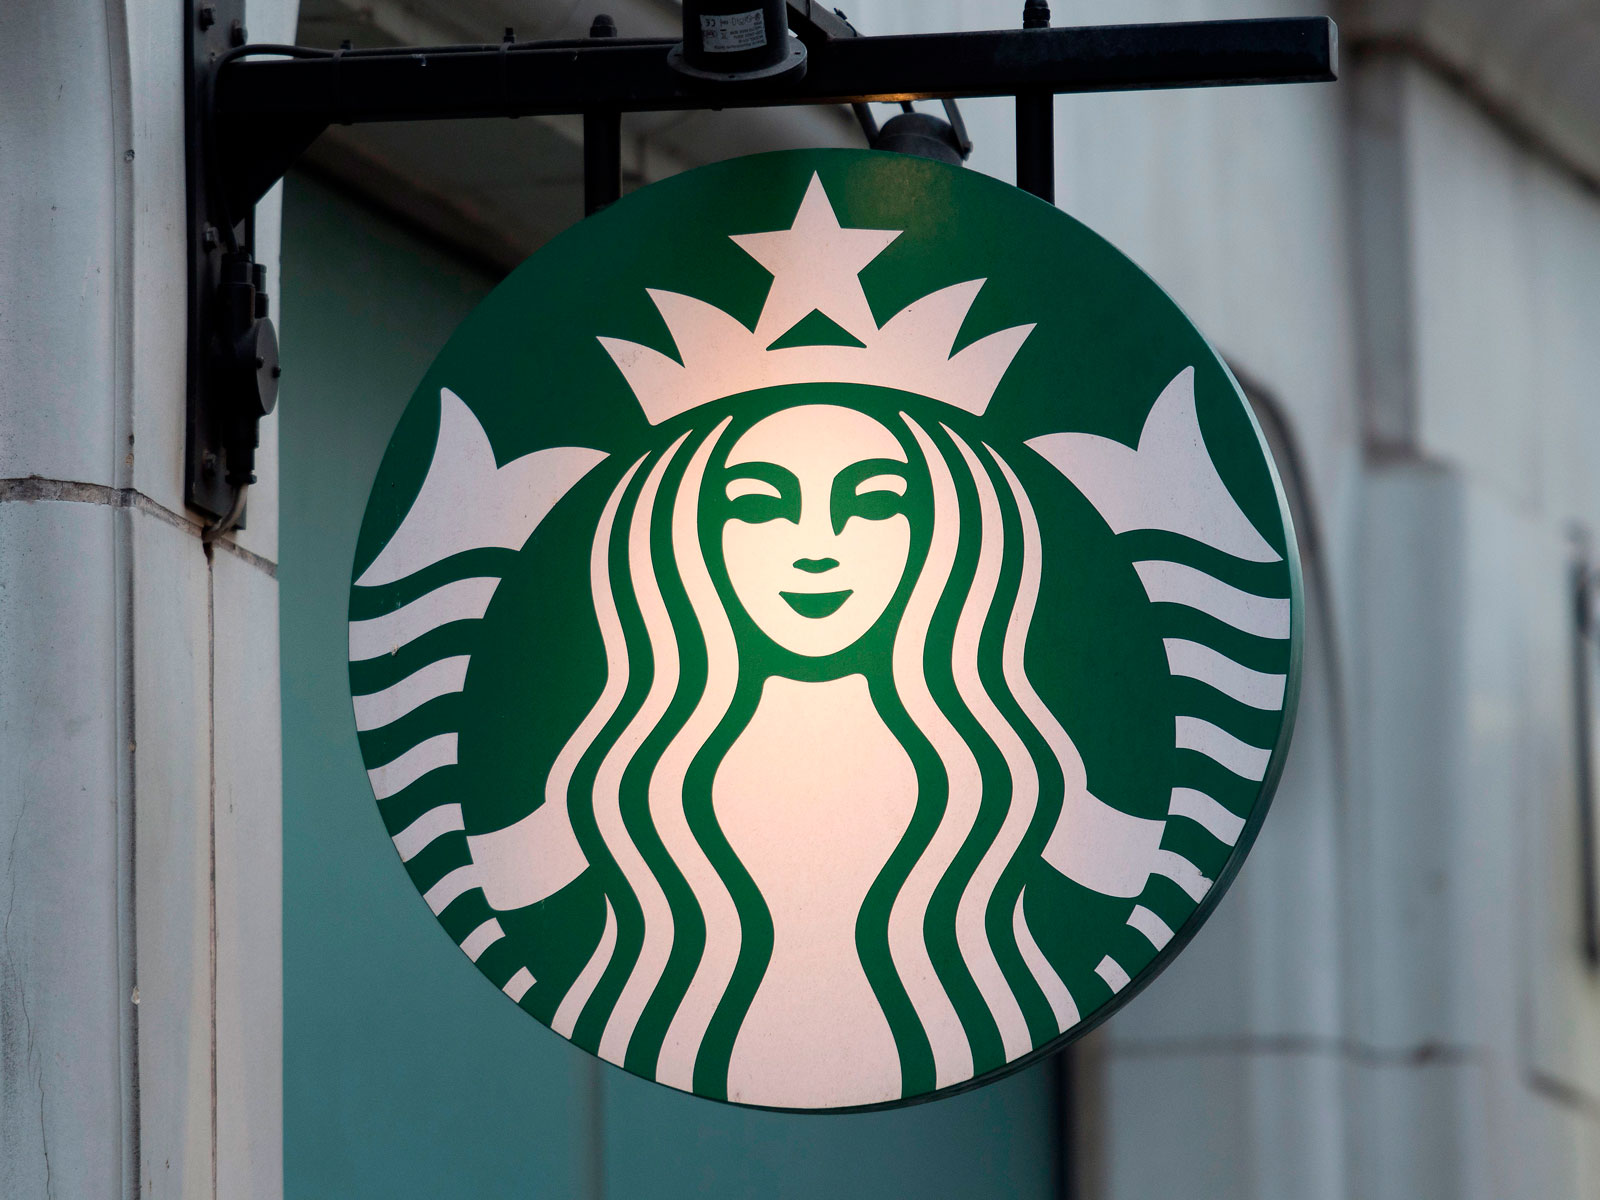 Starbucks Changes Its Bathroom Policy